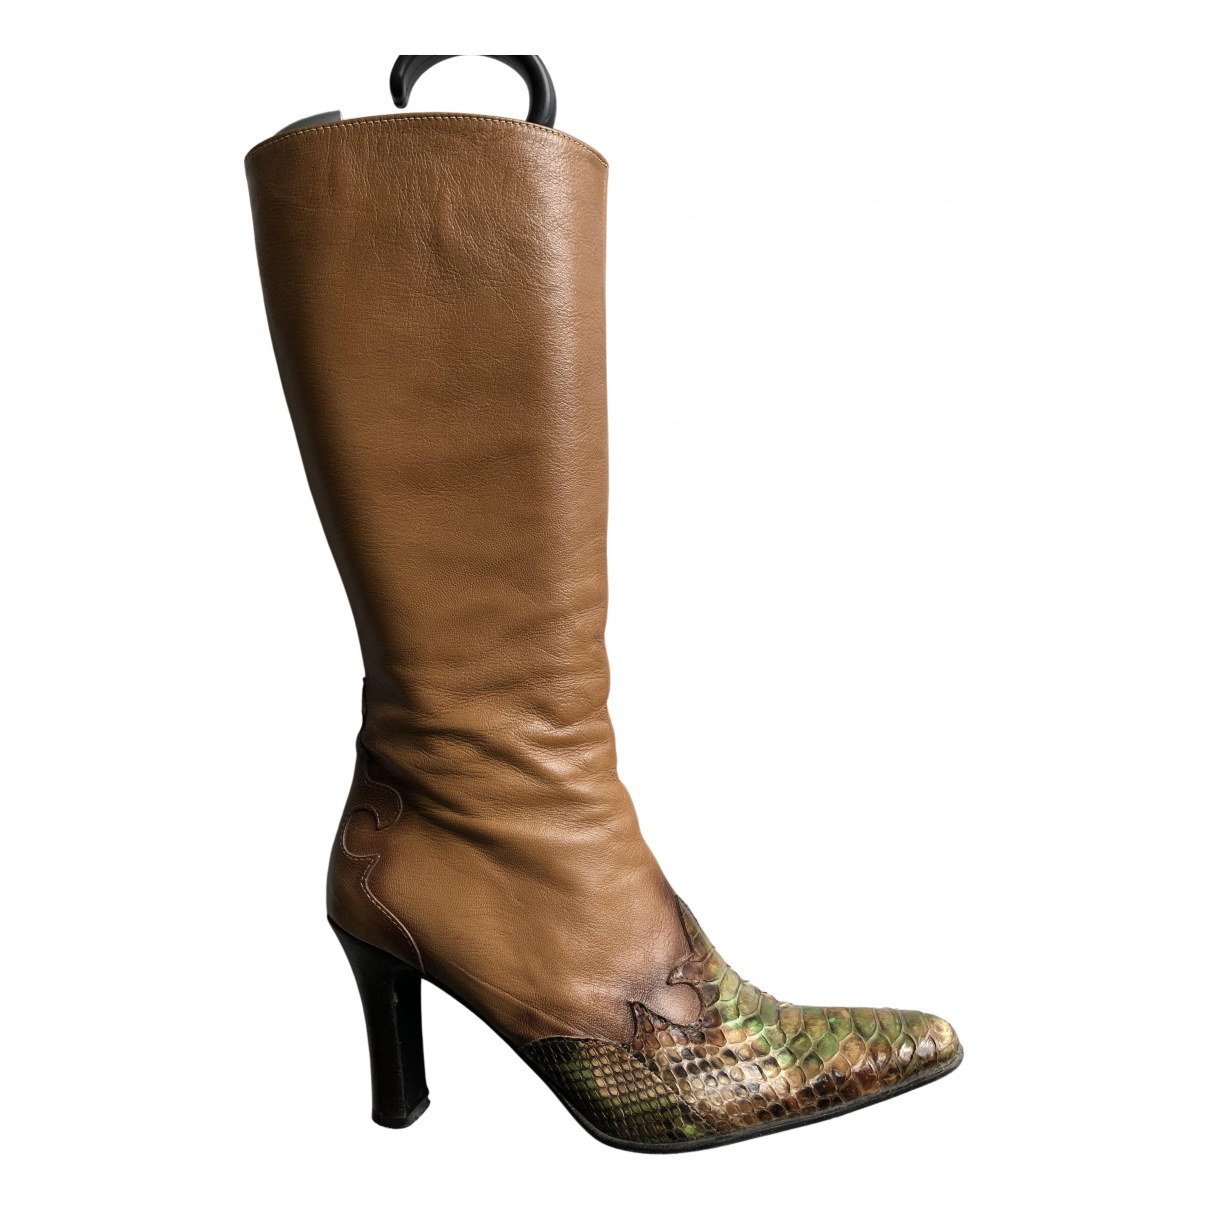 Non Signé / Unsigned N Brown Python Boots for Women 39.5 EU